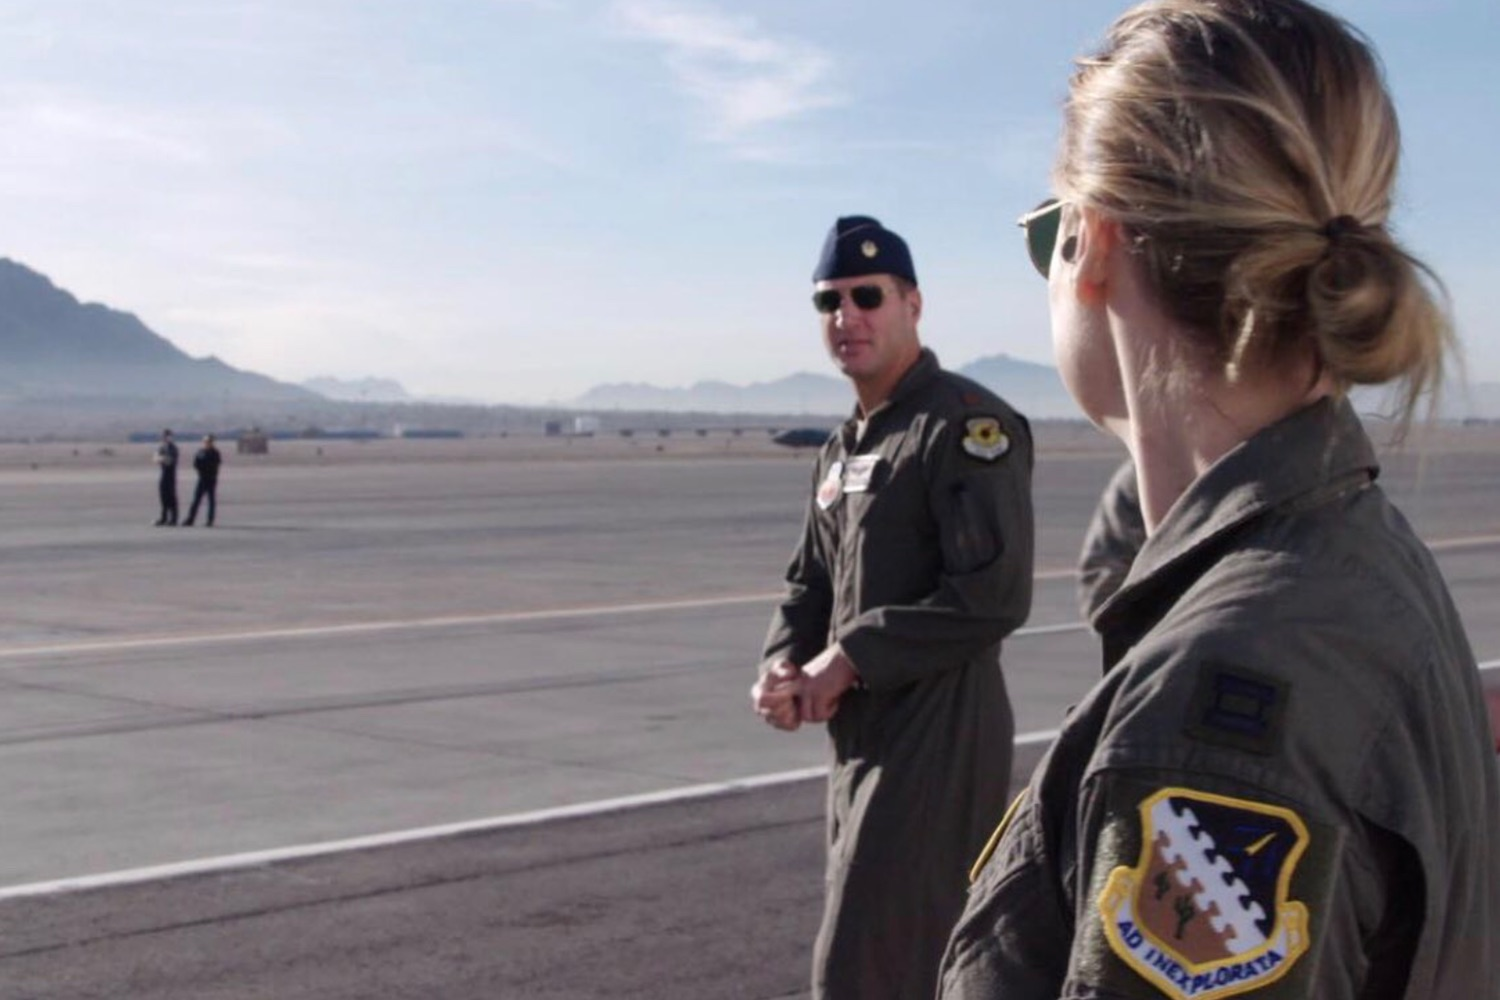 Marvel and Brie Larson Pay Tribute to Fallen Thunderbirds Pilot  Militarycom